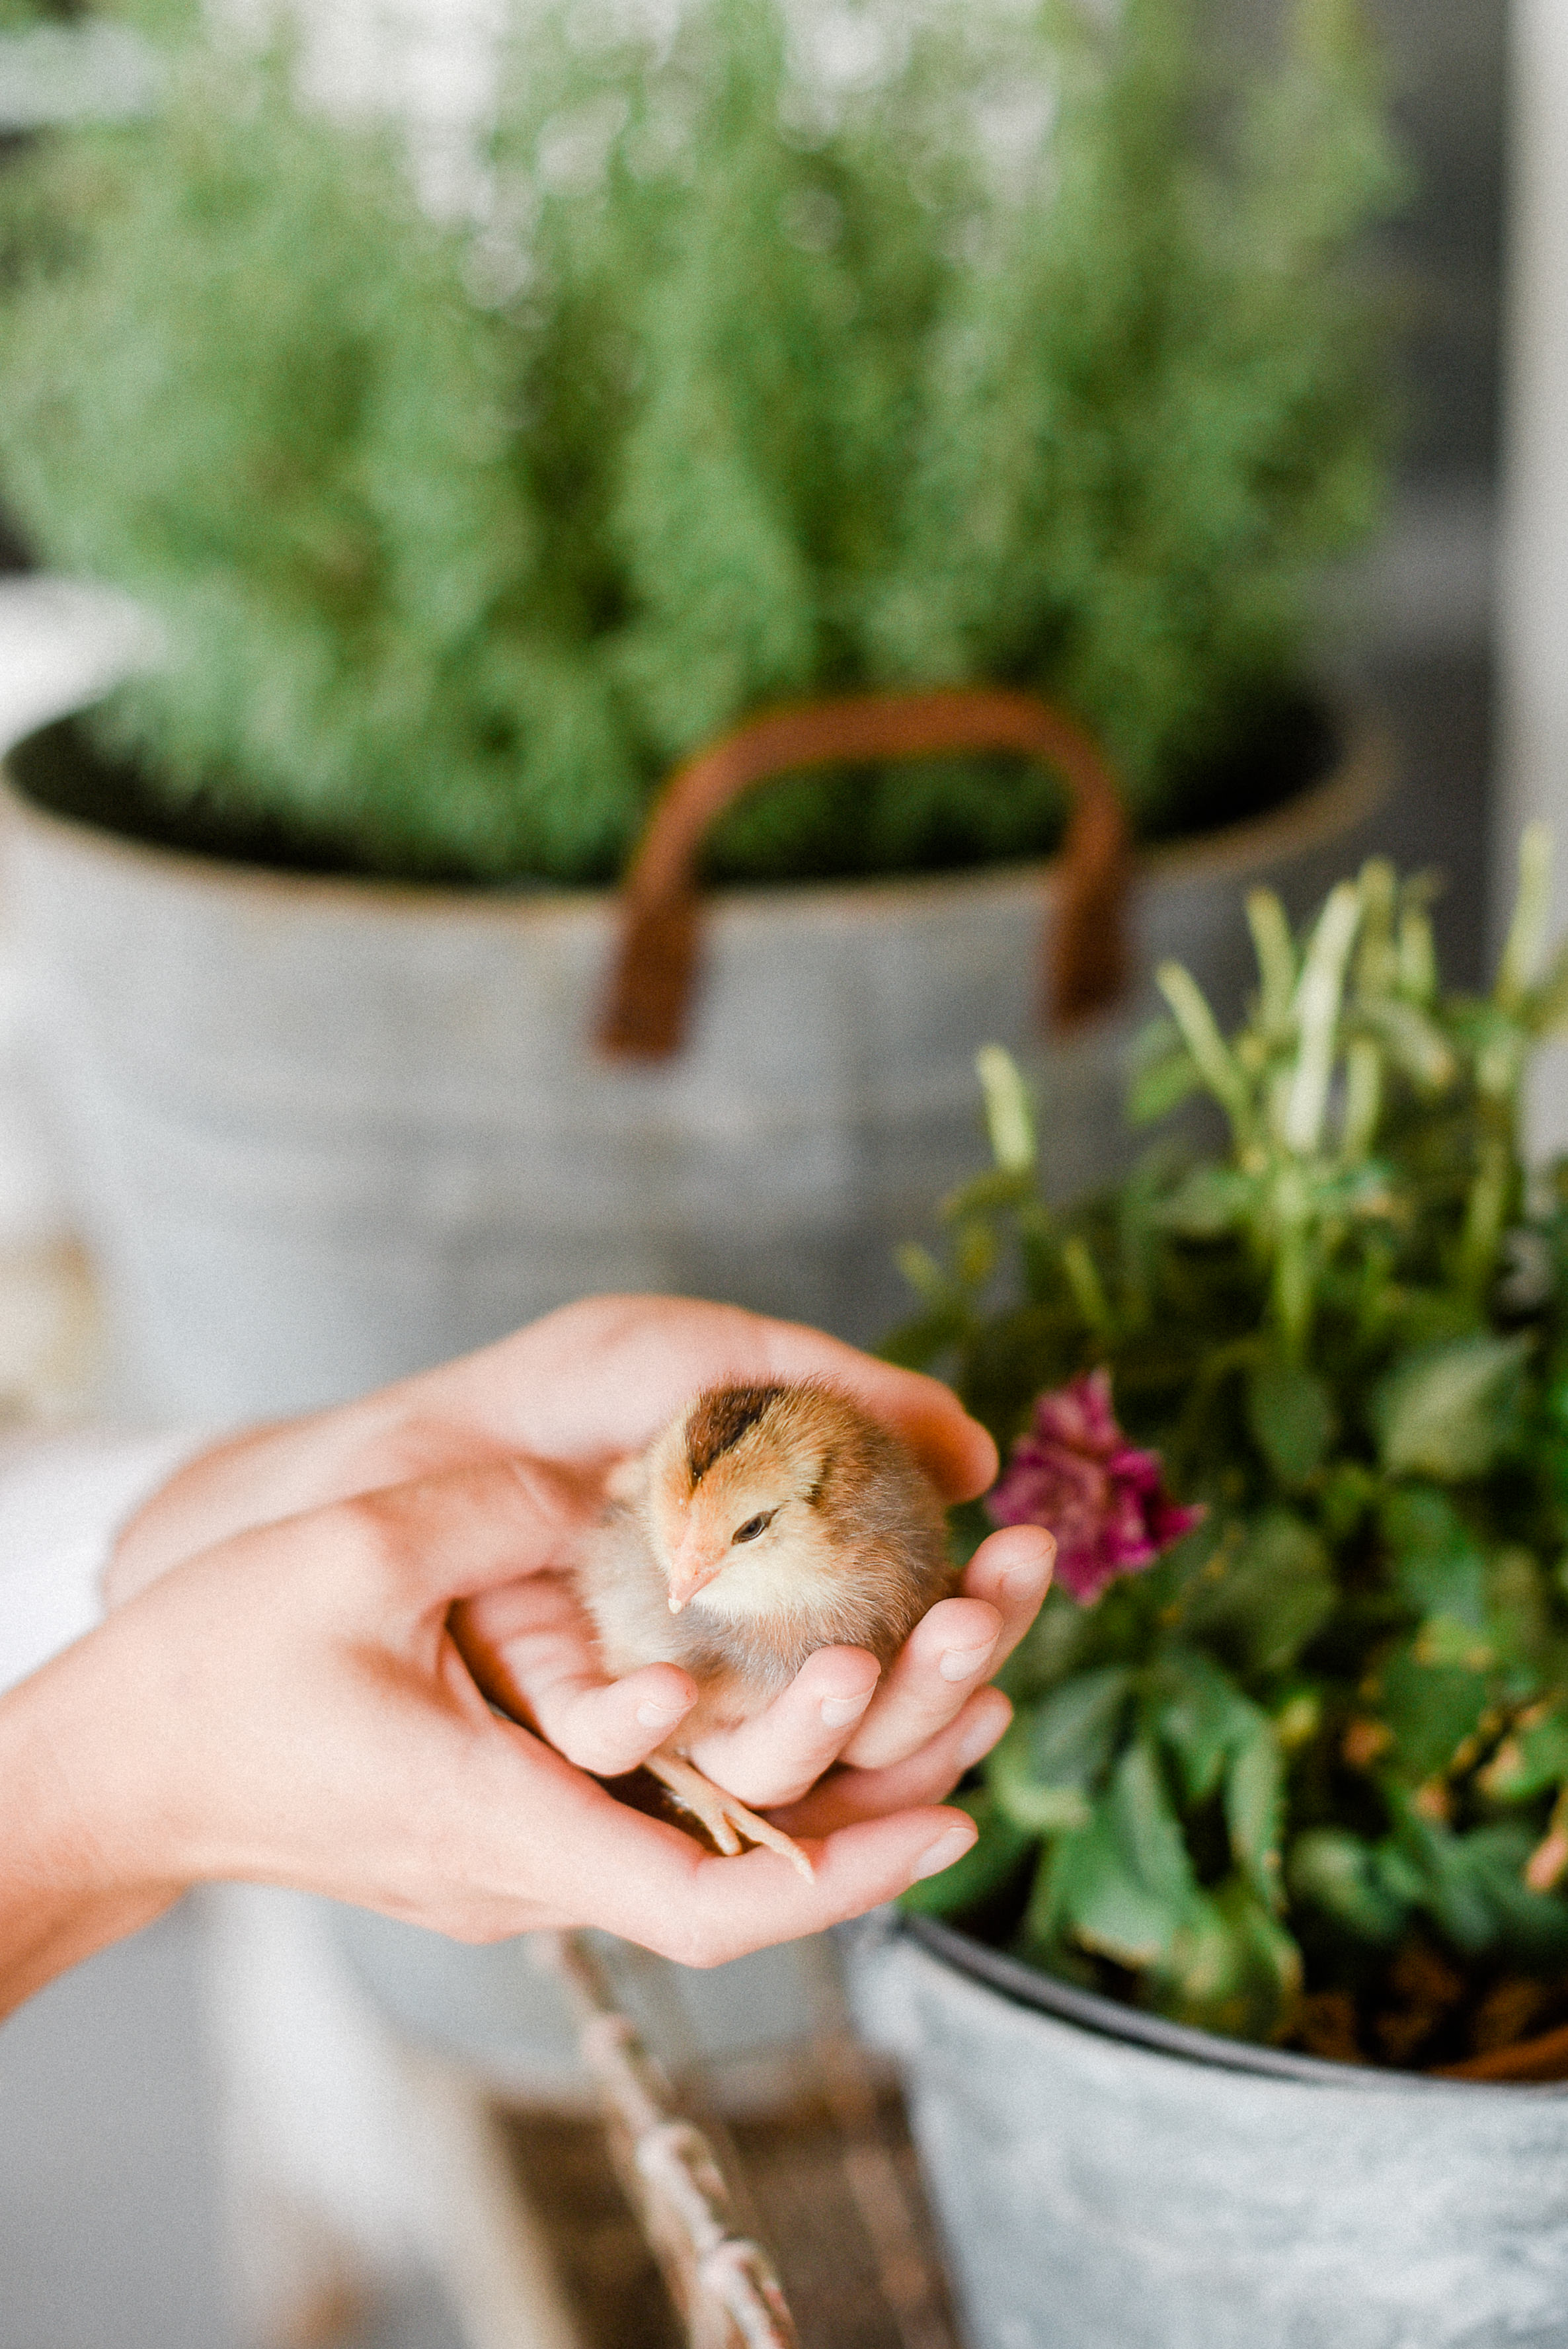 What supplies do you need to raise chicks? - To raise chicks, you will need some sort of brooder, a heat lamp, water trough, feed trough, and chick starter feed.